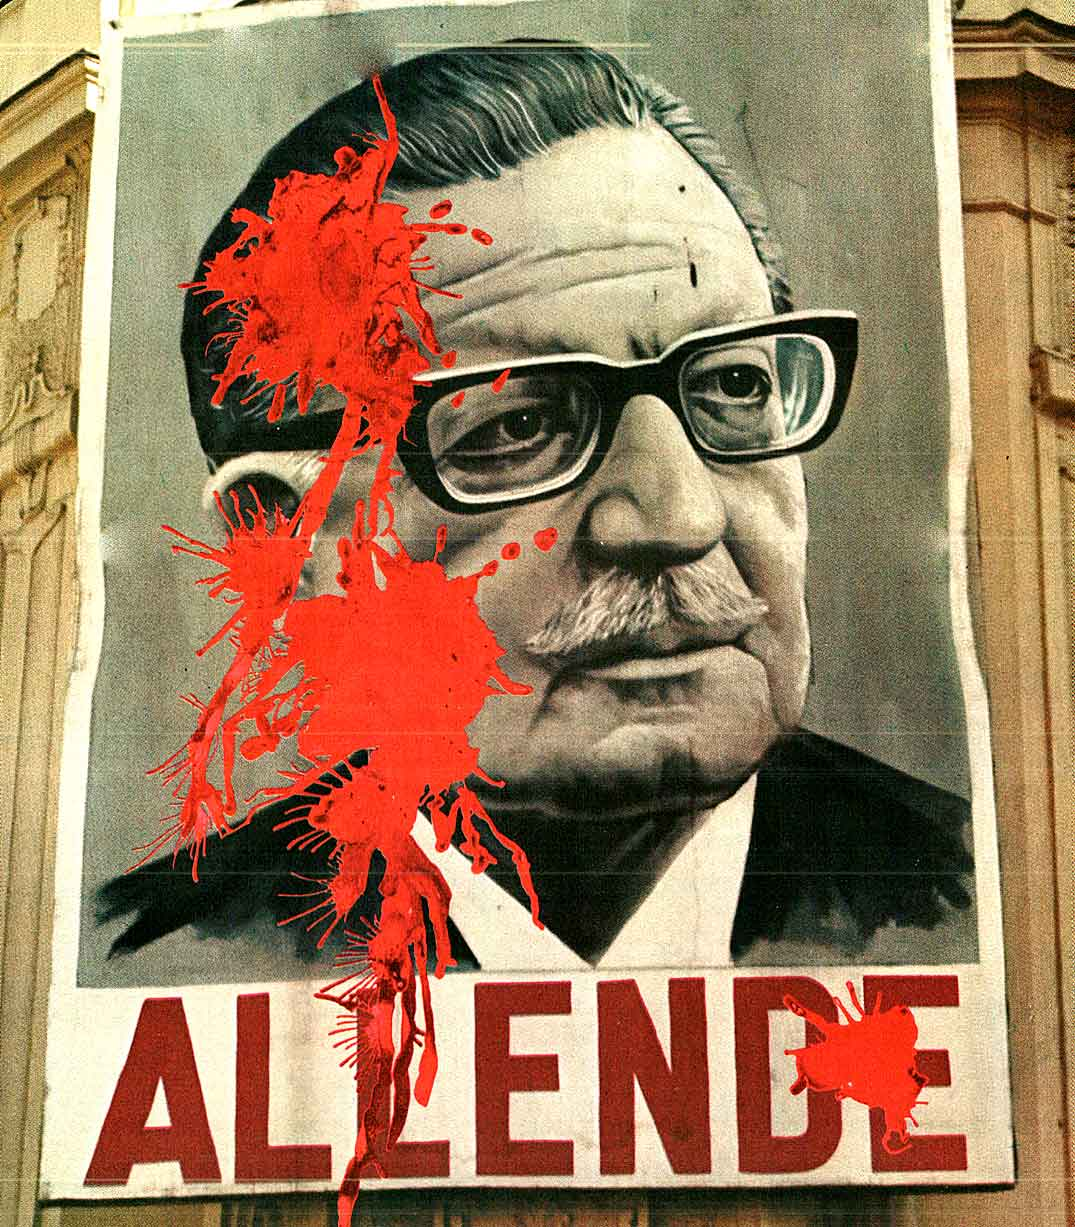 Allende overthrown - September 11,1973